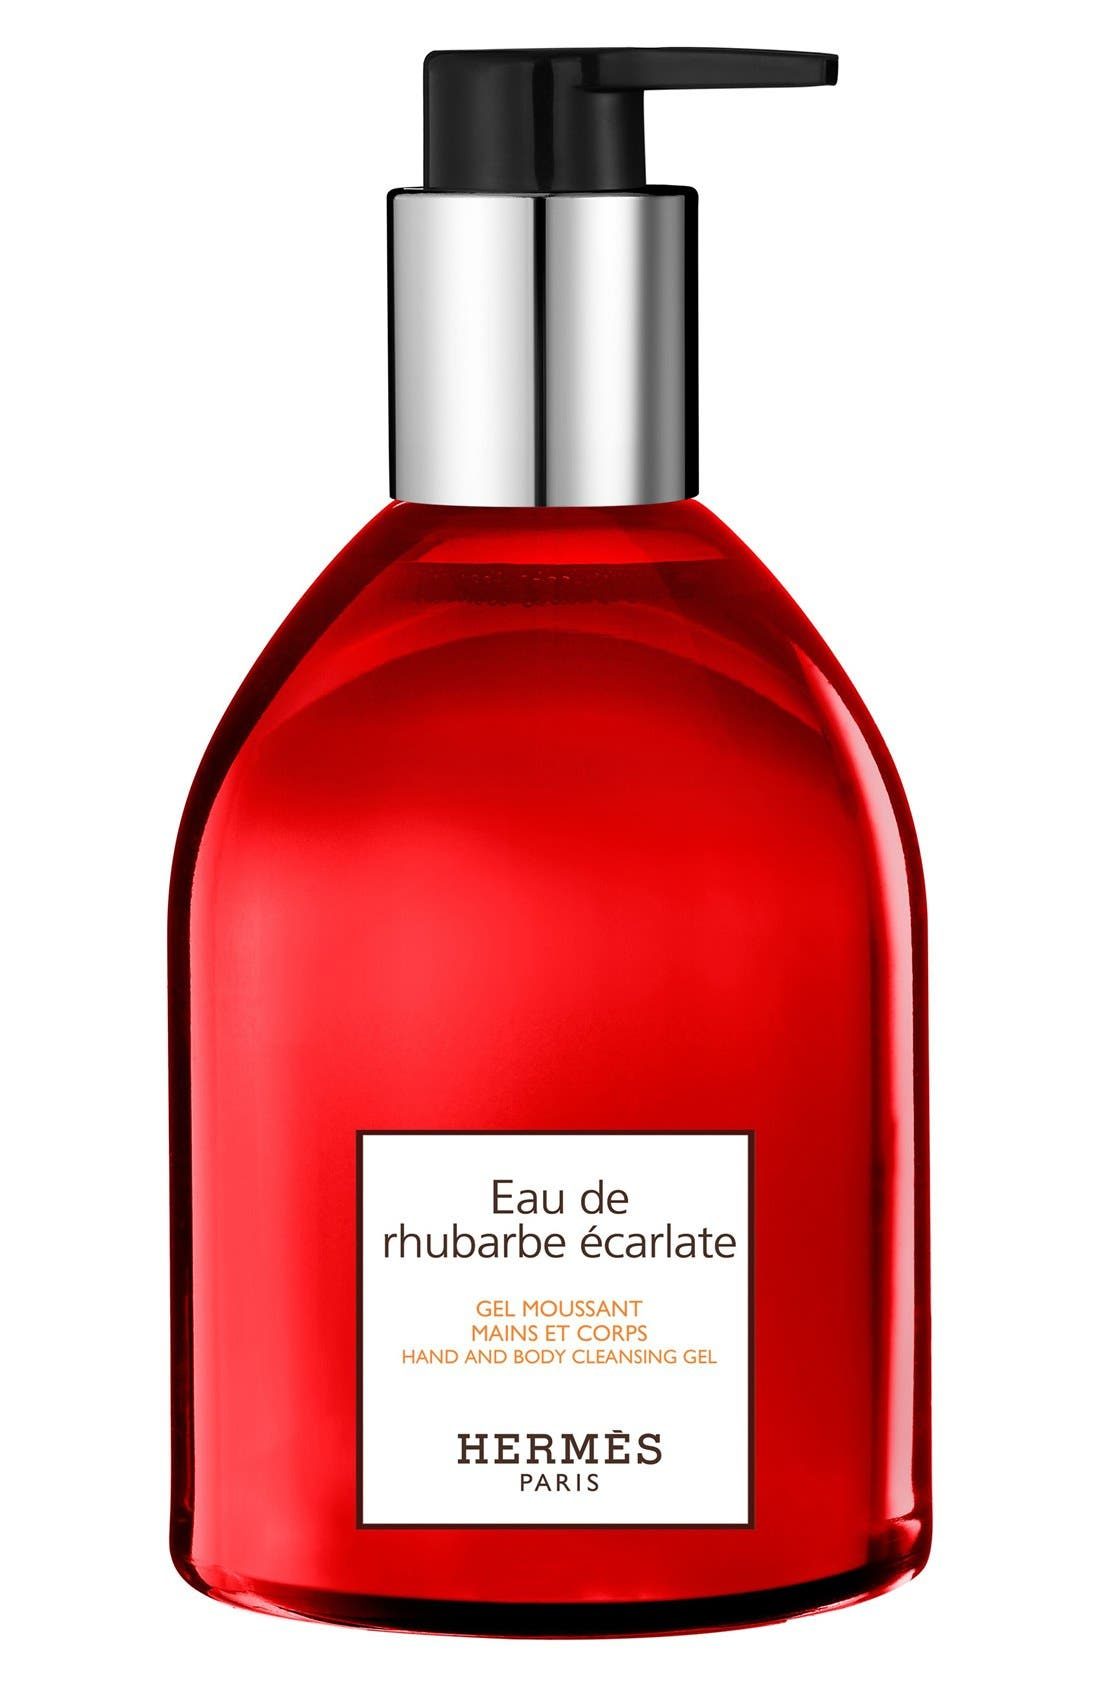 Hermès Eau de Rhubarbe Écarlate - Hand and Body Cleansing Gel